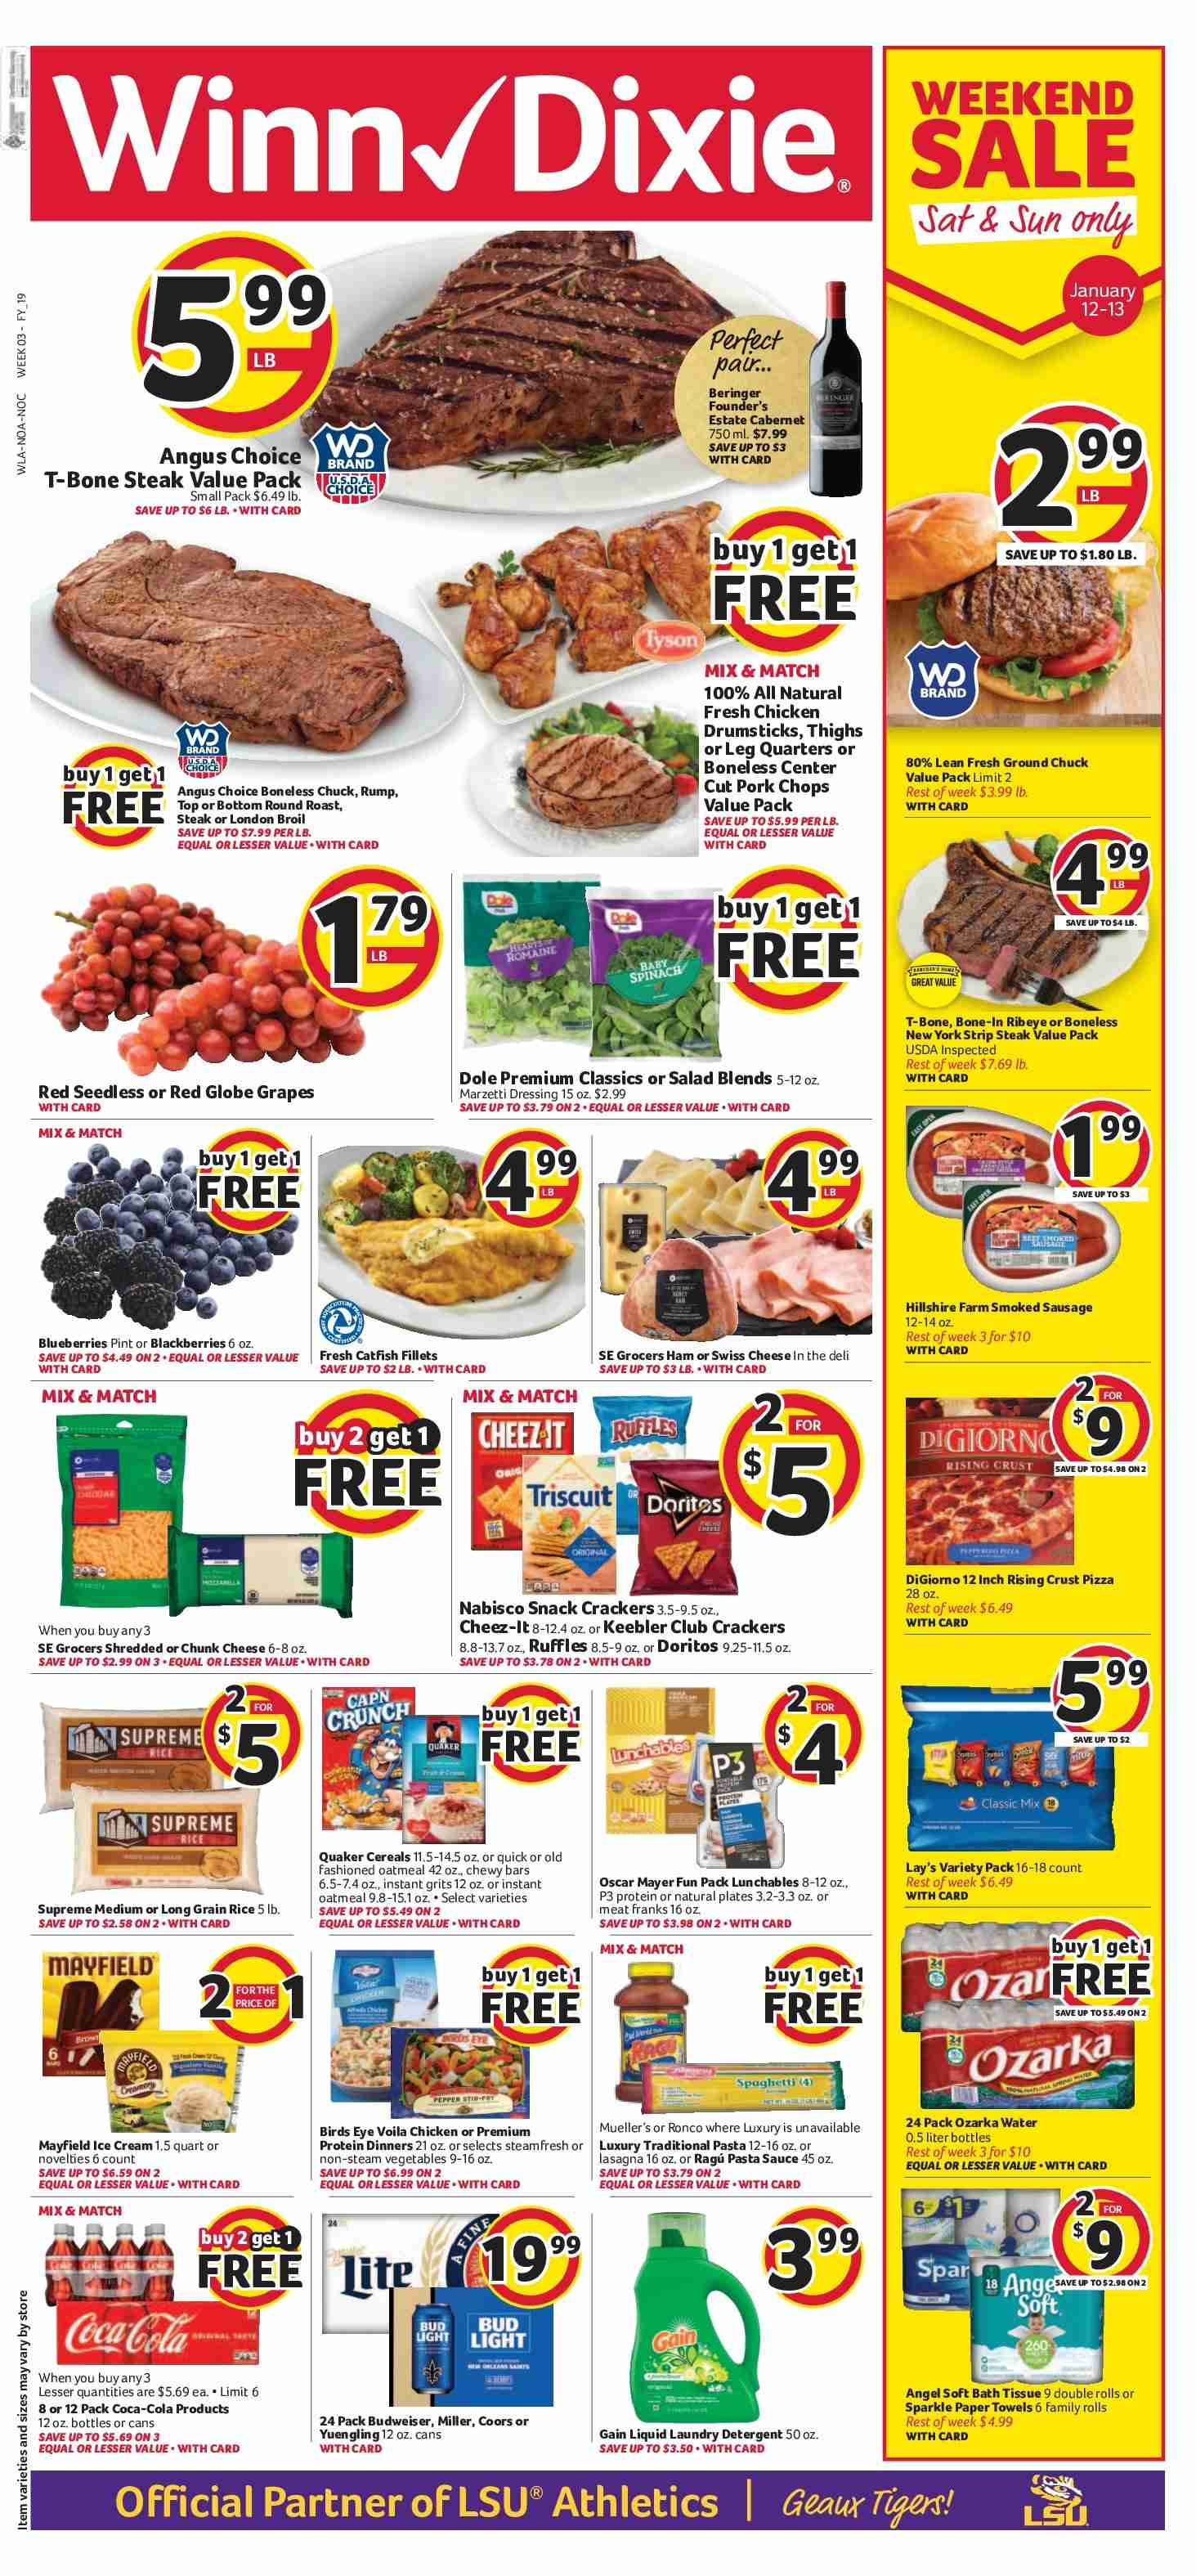 Winn Dixie Flyer - 01.09.2019 - 01.15.2019 - Sales products - angel, bath, bath tissue, blackberries, blueberries, bottom, budweiser, catfish, coca-cola, crackers, detergent, doritos, gain, grapes, ground chuck, red globe grapes, rice, sausage, smoked sausage, spaghetti, swiss cheese, t-bone steak, towel, ham, ice cream, pizza, plate, protein, chicken, chicken drumsticks, paper towel, pasta sauce, oatmeal, steak, cheese, dressing, vegetables, snack, grits, pasta, bud light, salad, sauce. Page 1.